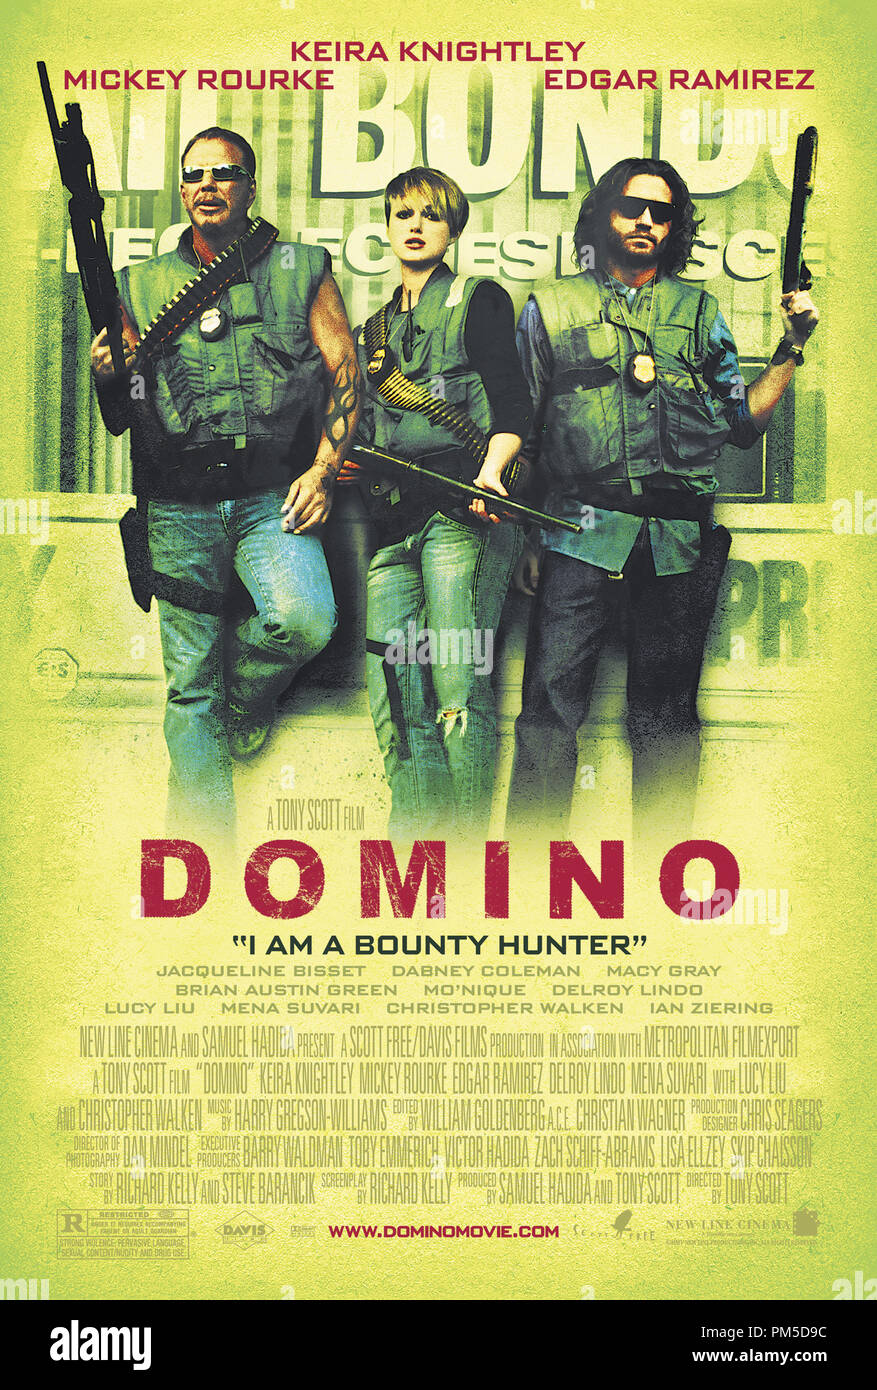 Poster Art from 'Domino' Poster © 2005 New Line Cinema   File Reference # 30736265THA  For Editorial Use Only -  All Rights Reserved - Stock Image